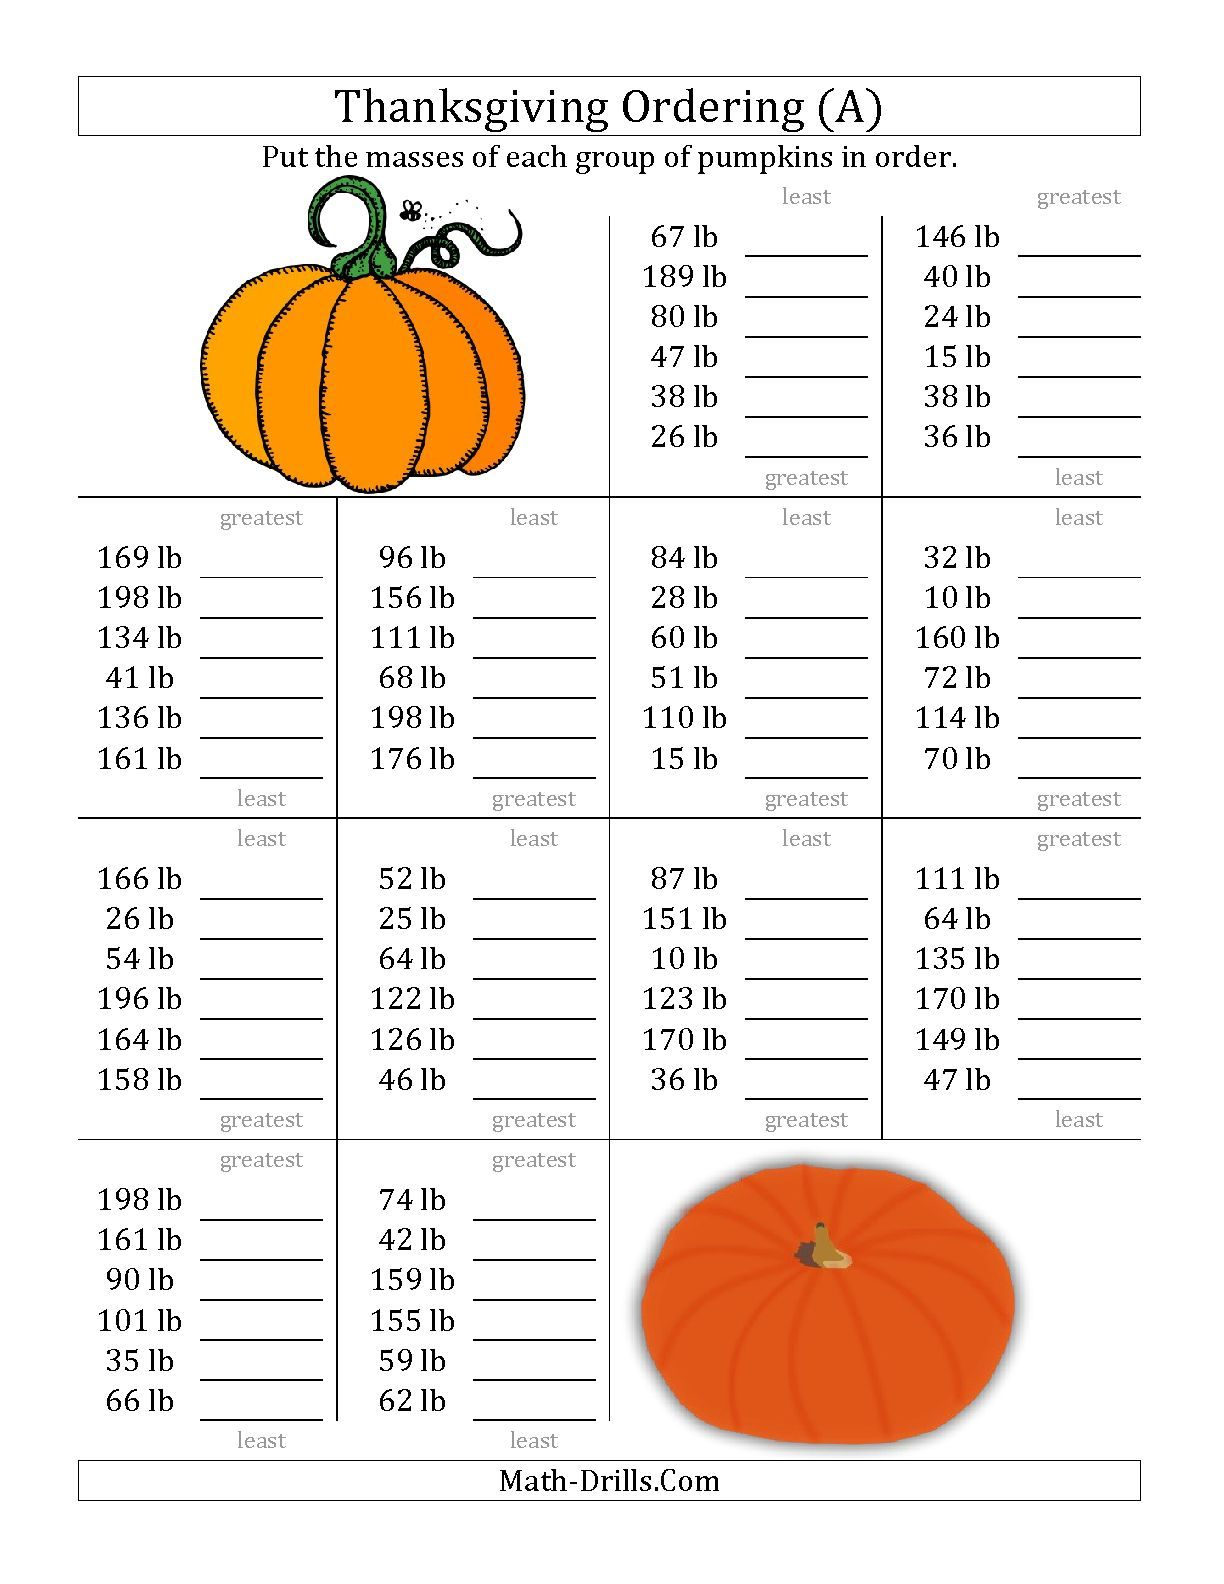 worksheet Thanksgiving Math Worksheet the ordering pumpkin masses in pounds a math worksheet from thanksgiving worksheet